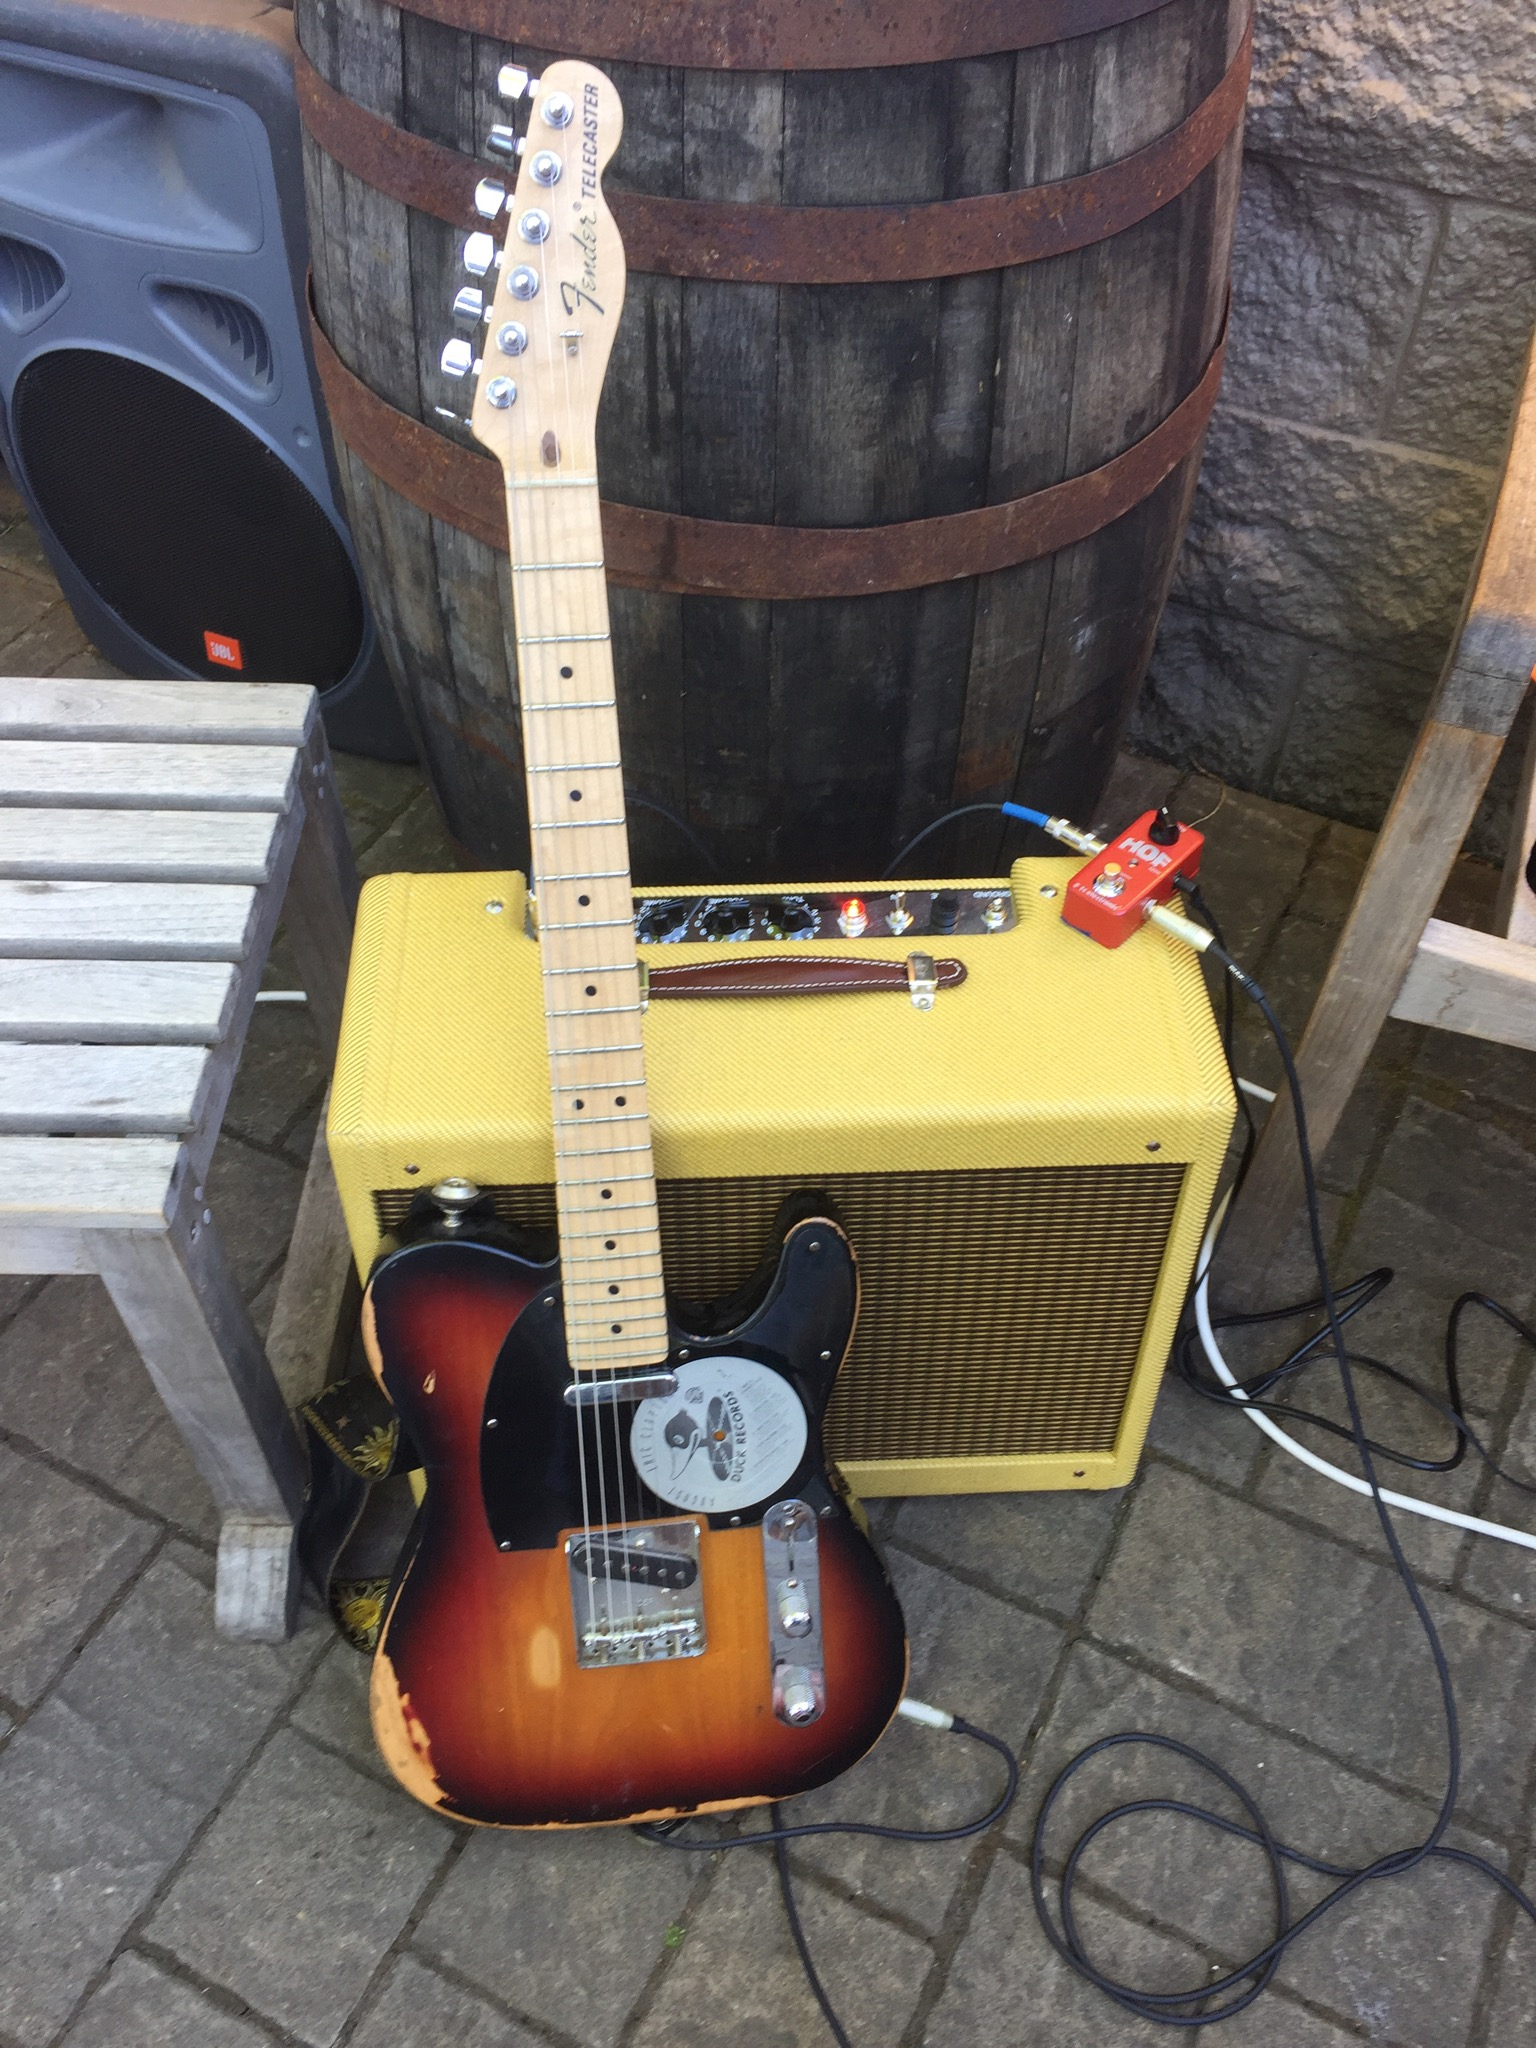 Welcome To How Make A Circuit Board Guitar Pick This Amp Is Fantastic Addition And May Be My Go From Now On It Wont Last Build You Chad Buy Tweed 5e3 Kit